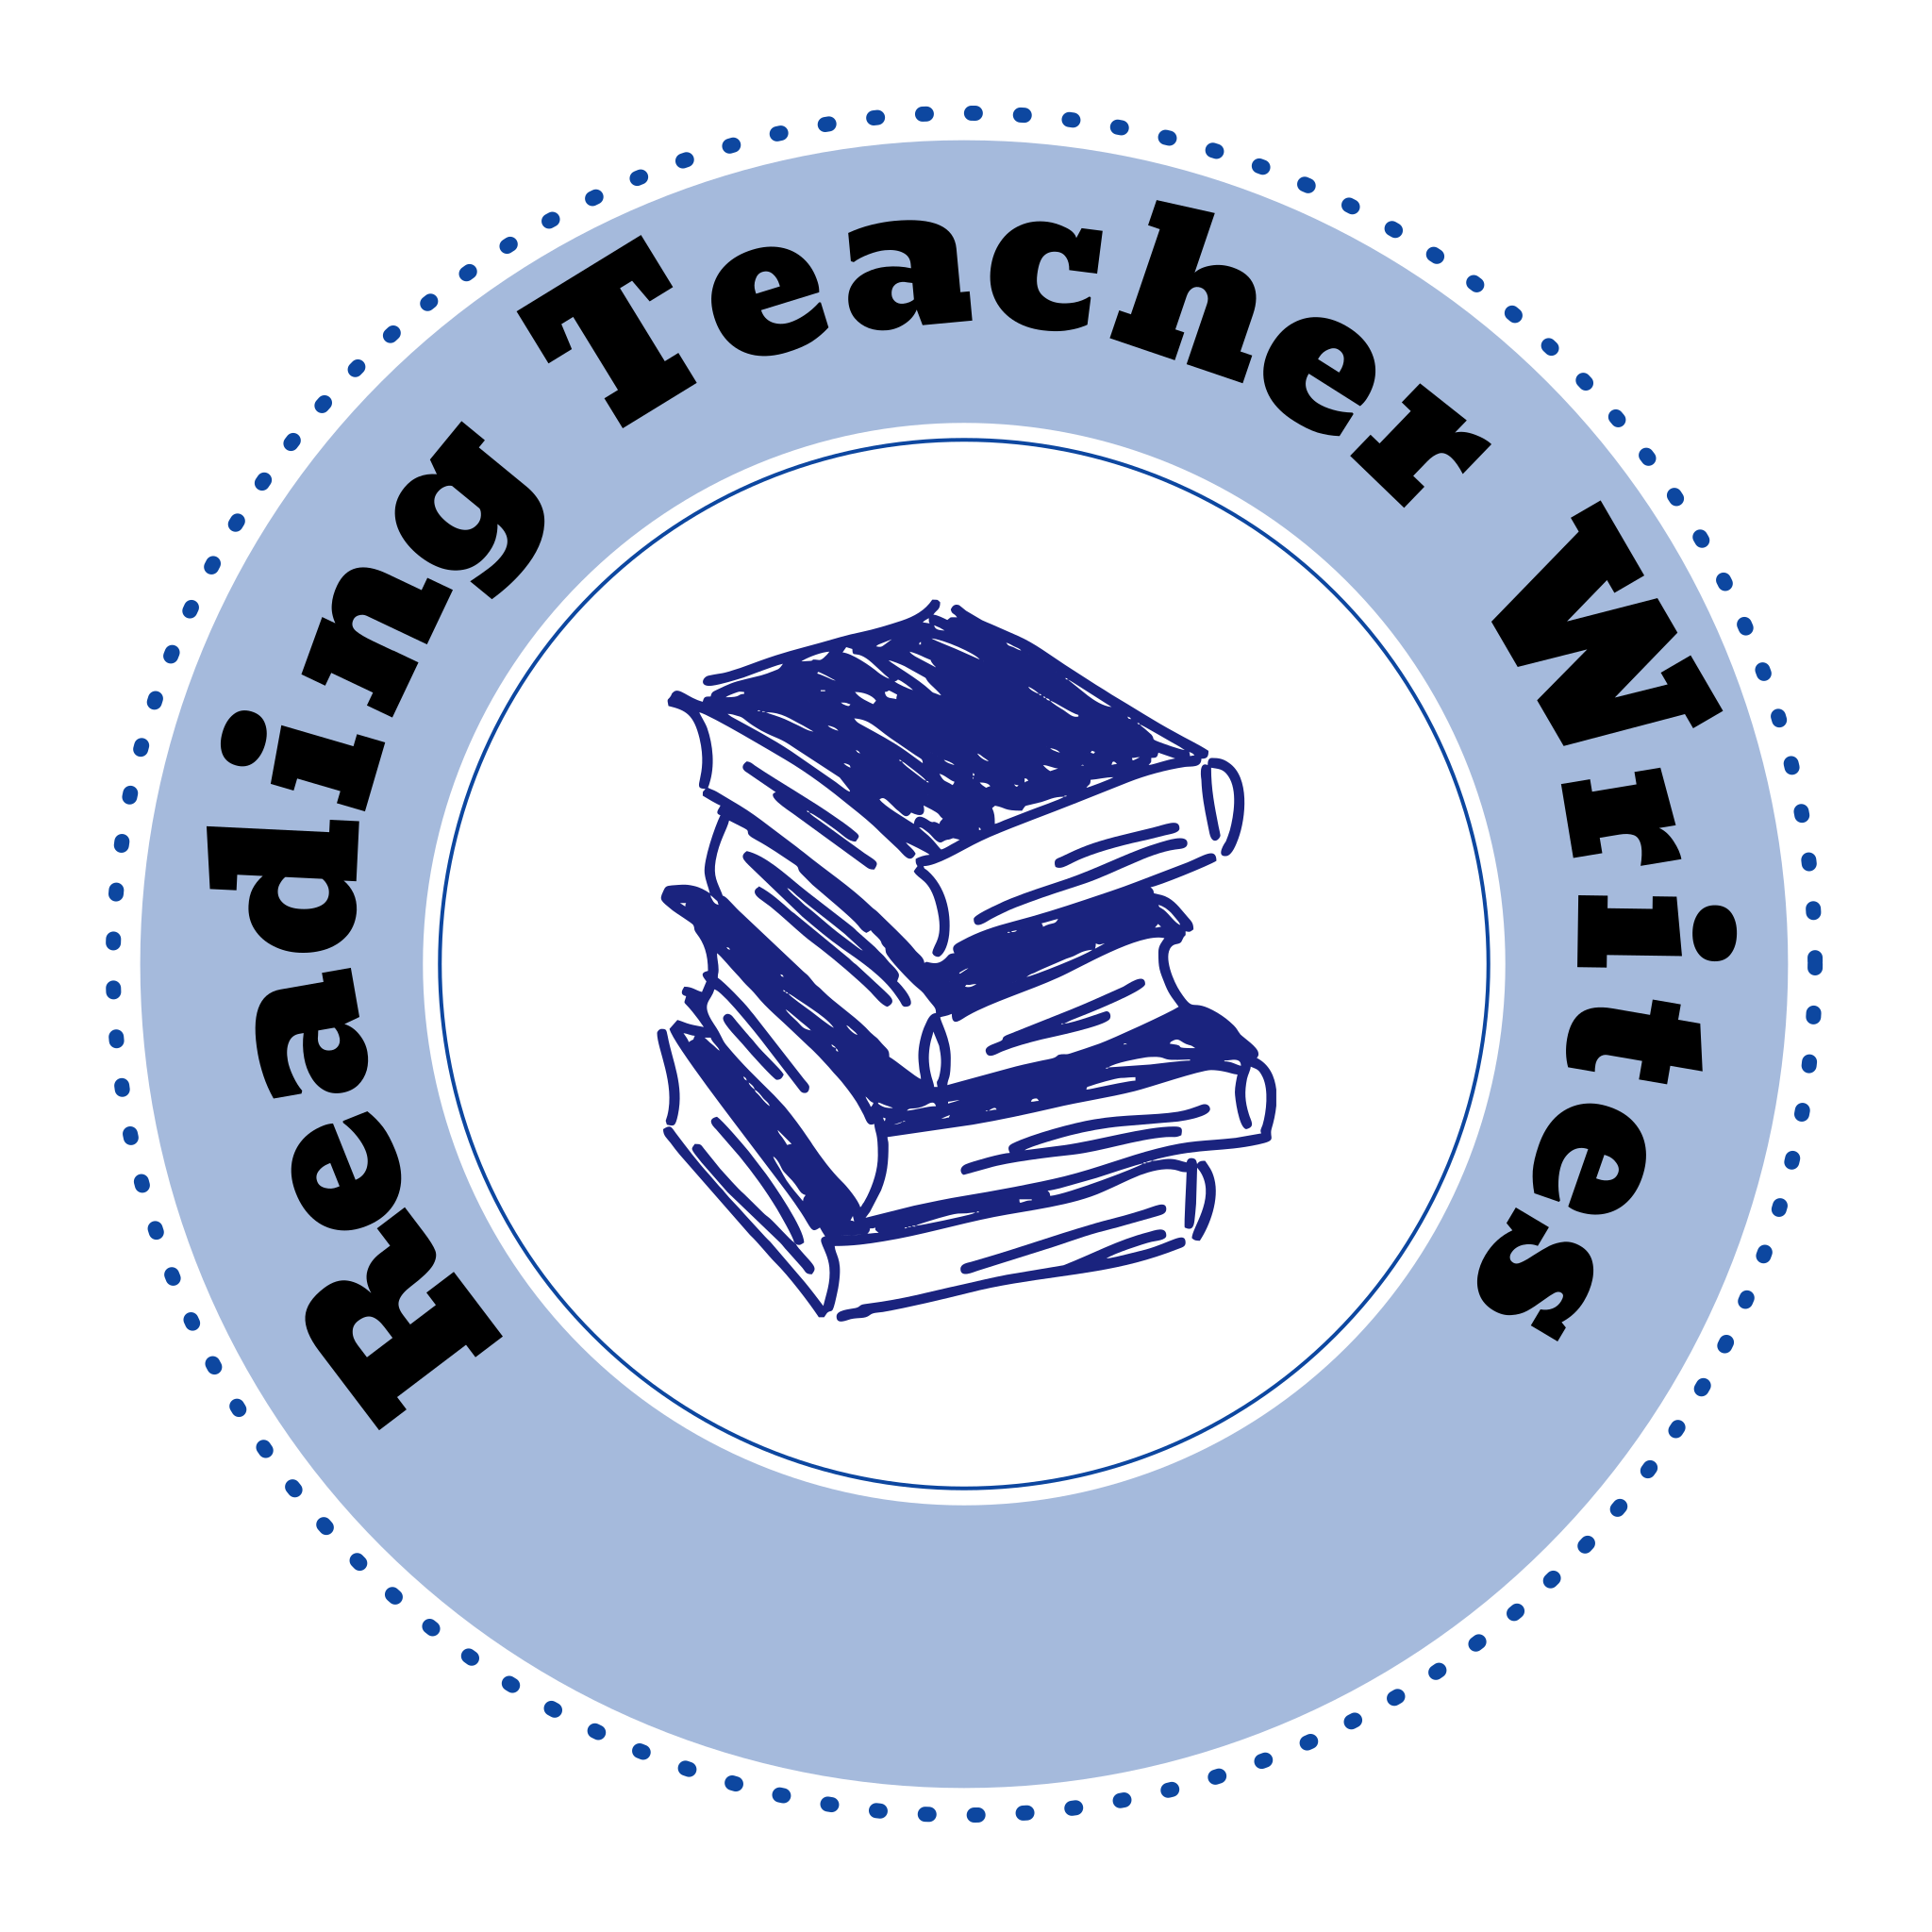 ReadingTeacherWrites.Org